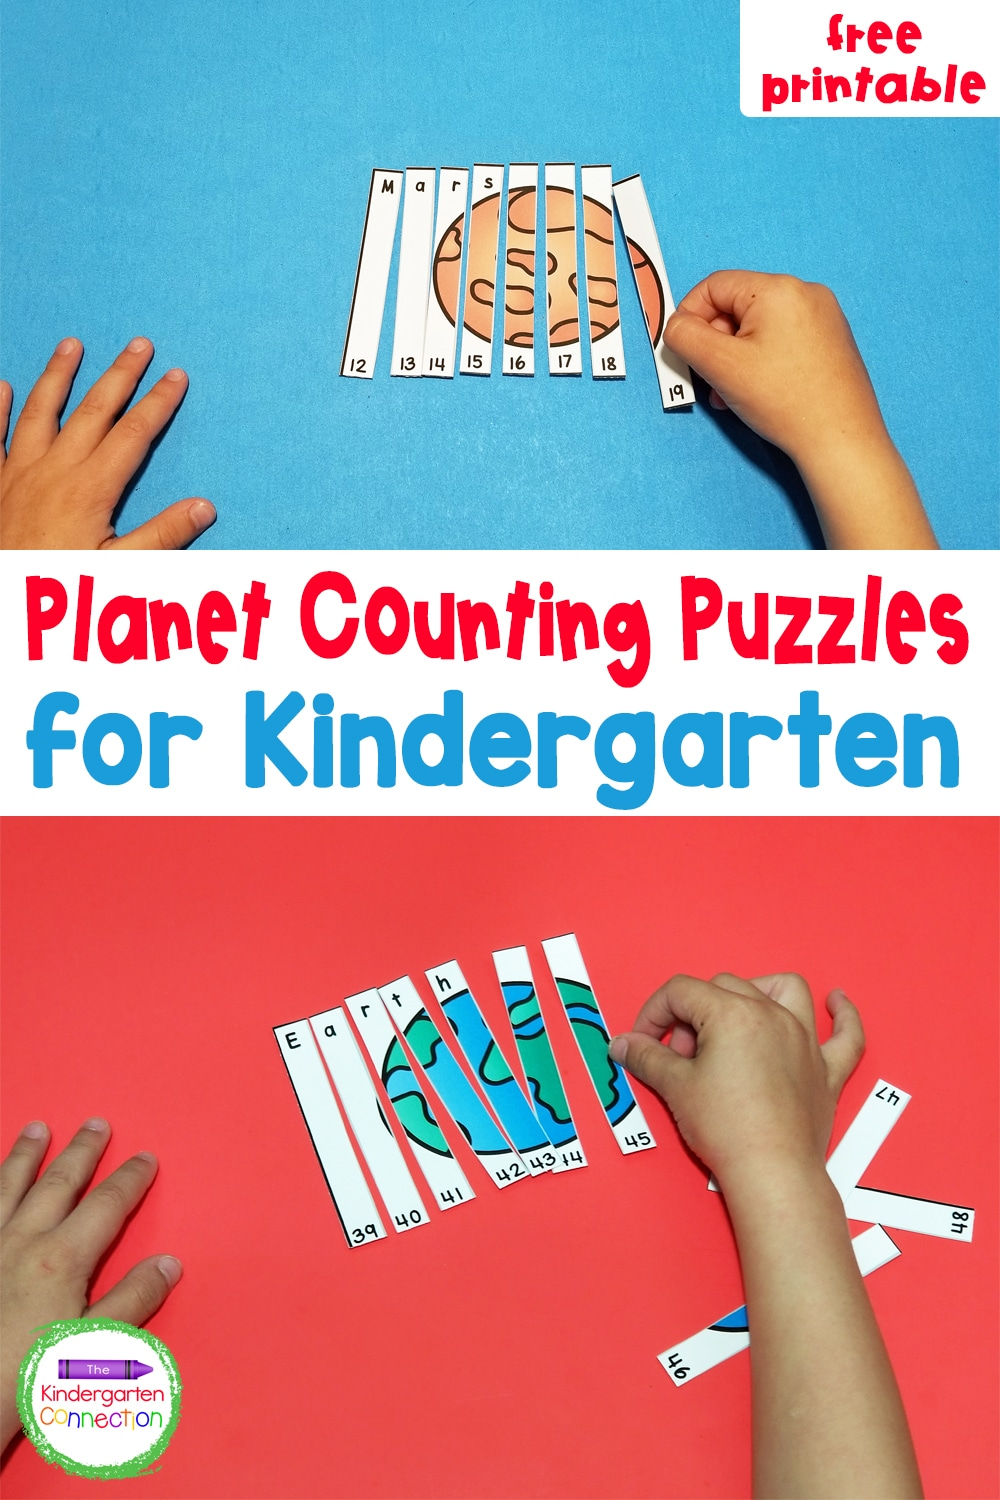 These free Planet Counting Puzzles for kids are a great way to practice number sequencing while learning more about planets and outer space!